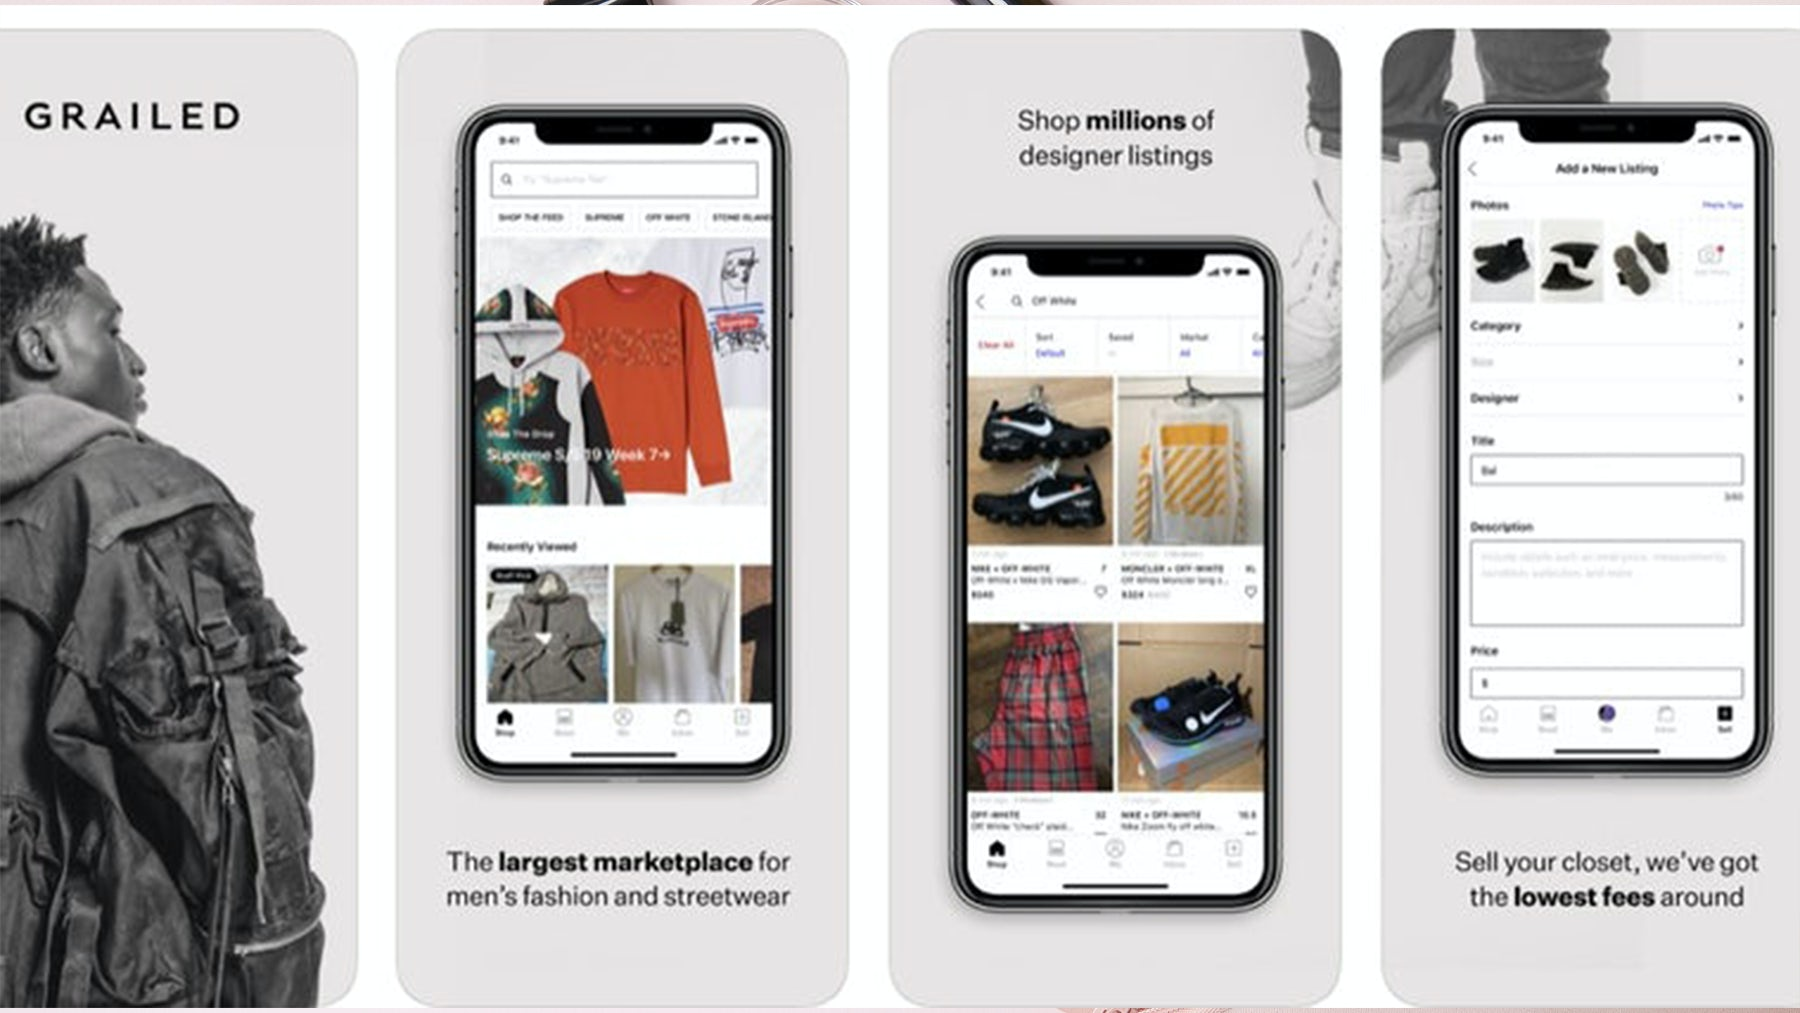 Founded in 2013, Grailed has become an online destination for menswear. Grailed.